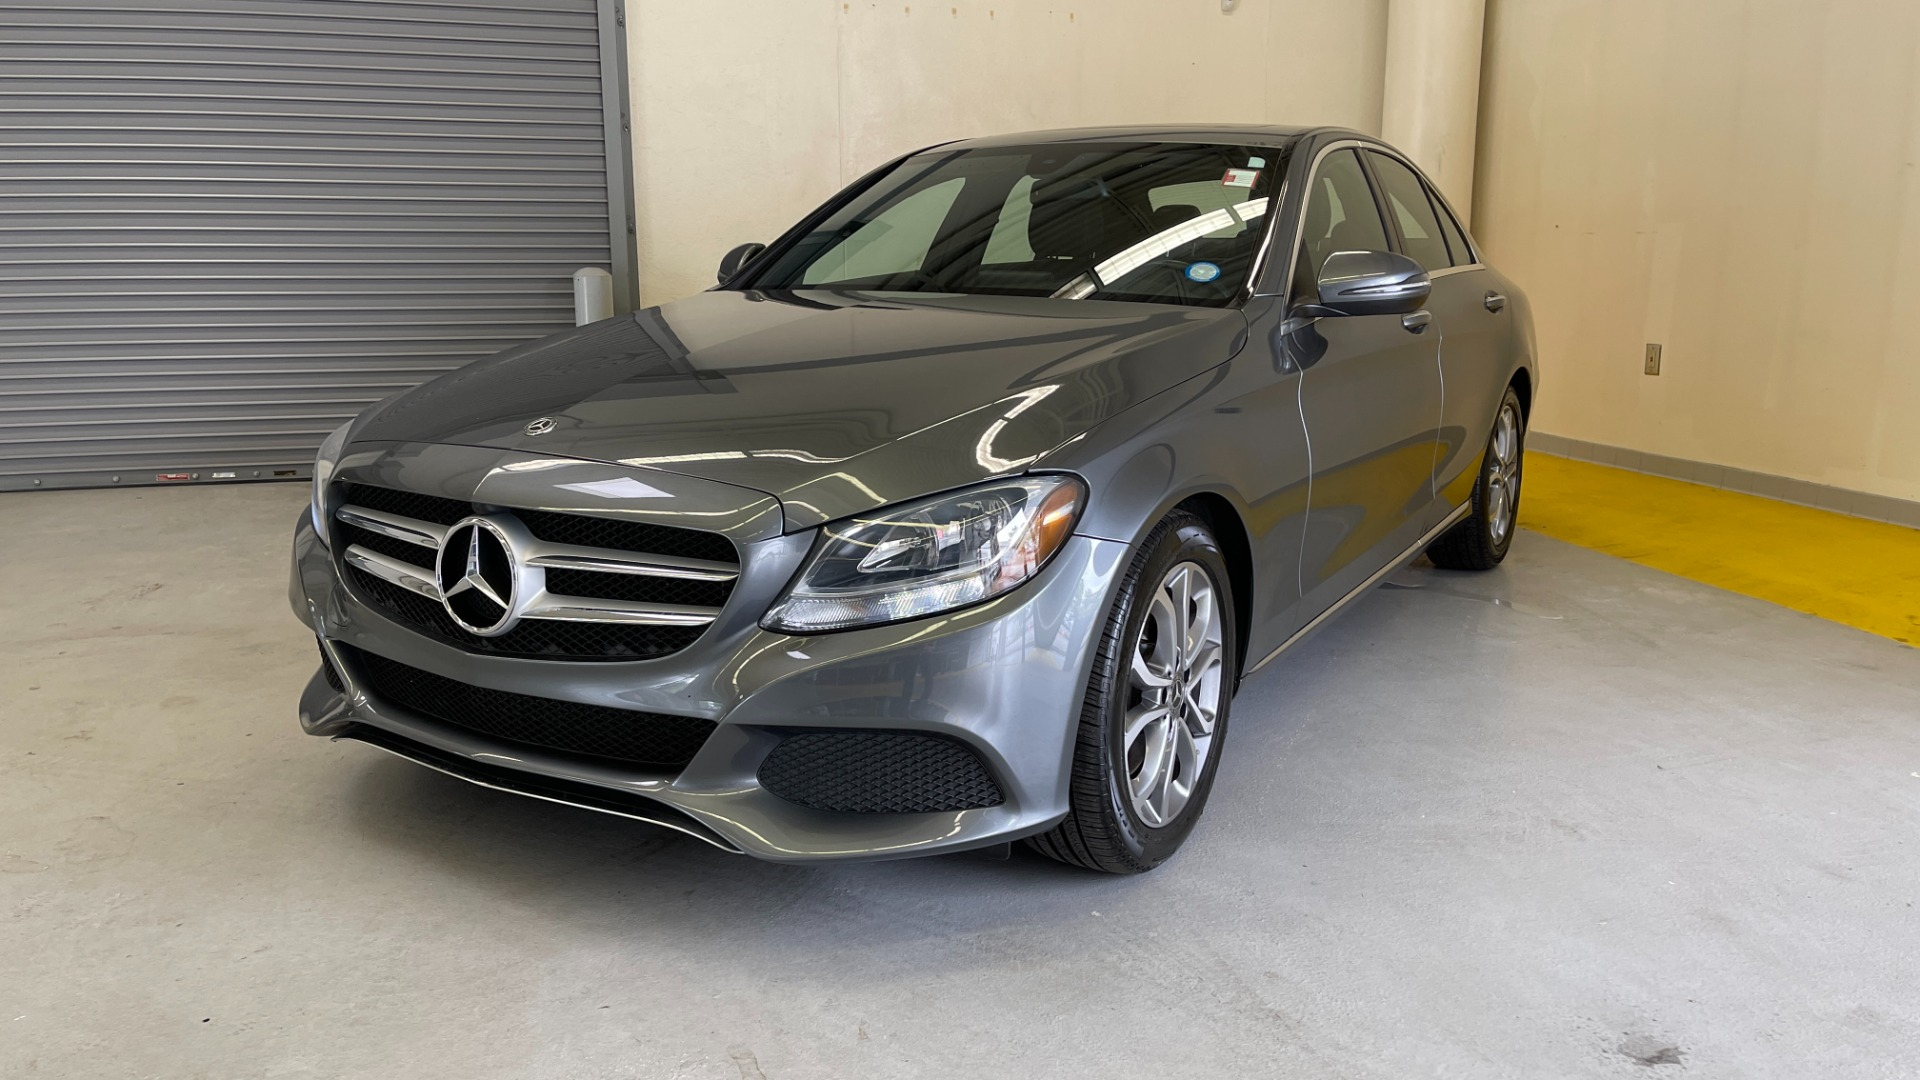 Used 2018 Mercedes-Benz C-CLASS C 300 PREMIUM / SUNROOF / APPLE CARPLAY / HTD STS / REARVIEW for sale $31,795 at Formula Imports in Charlotte NC 28227 4